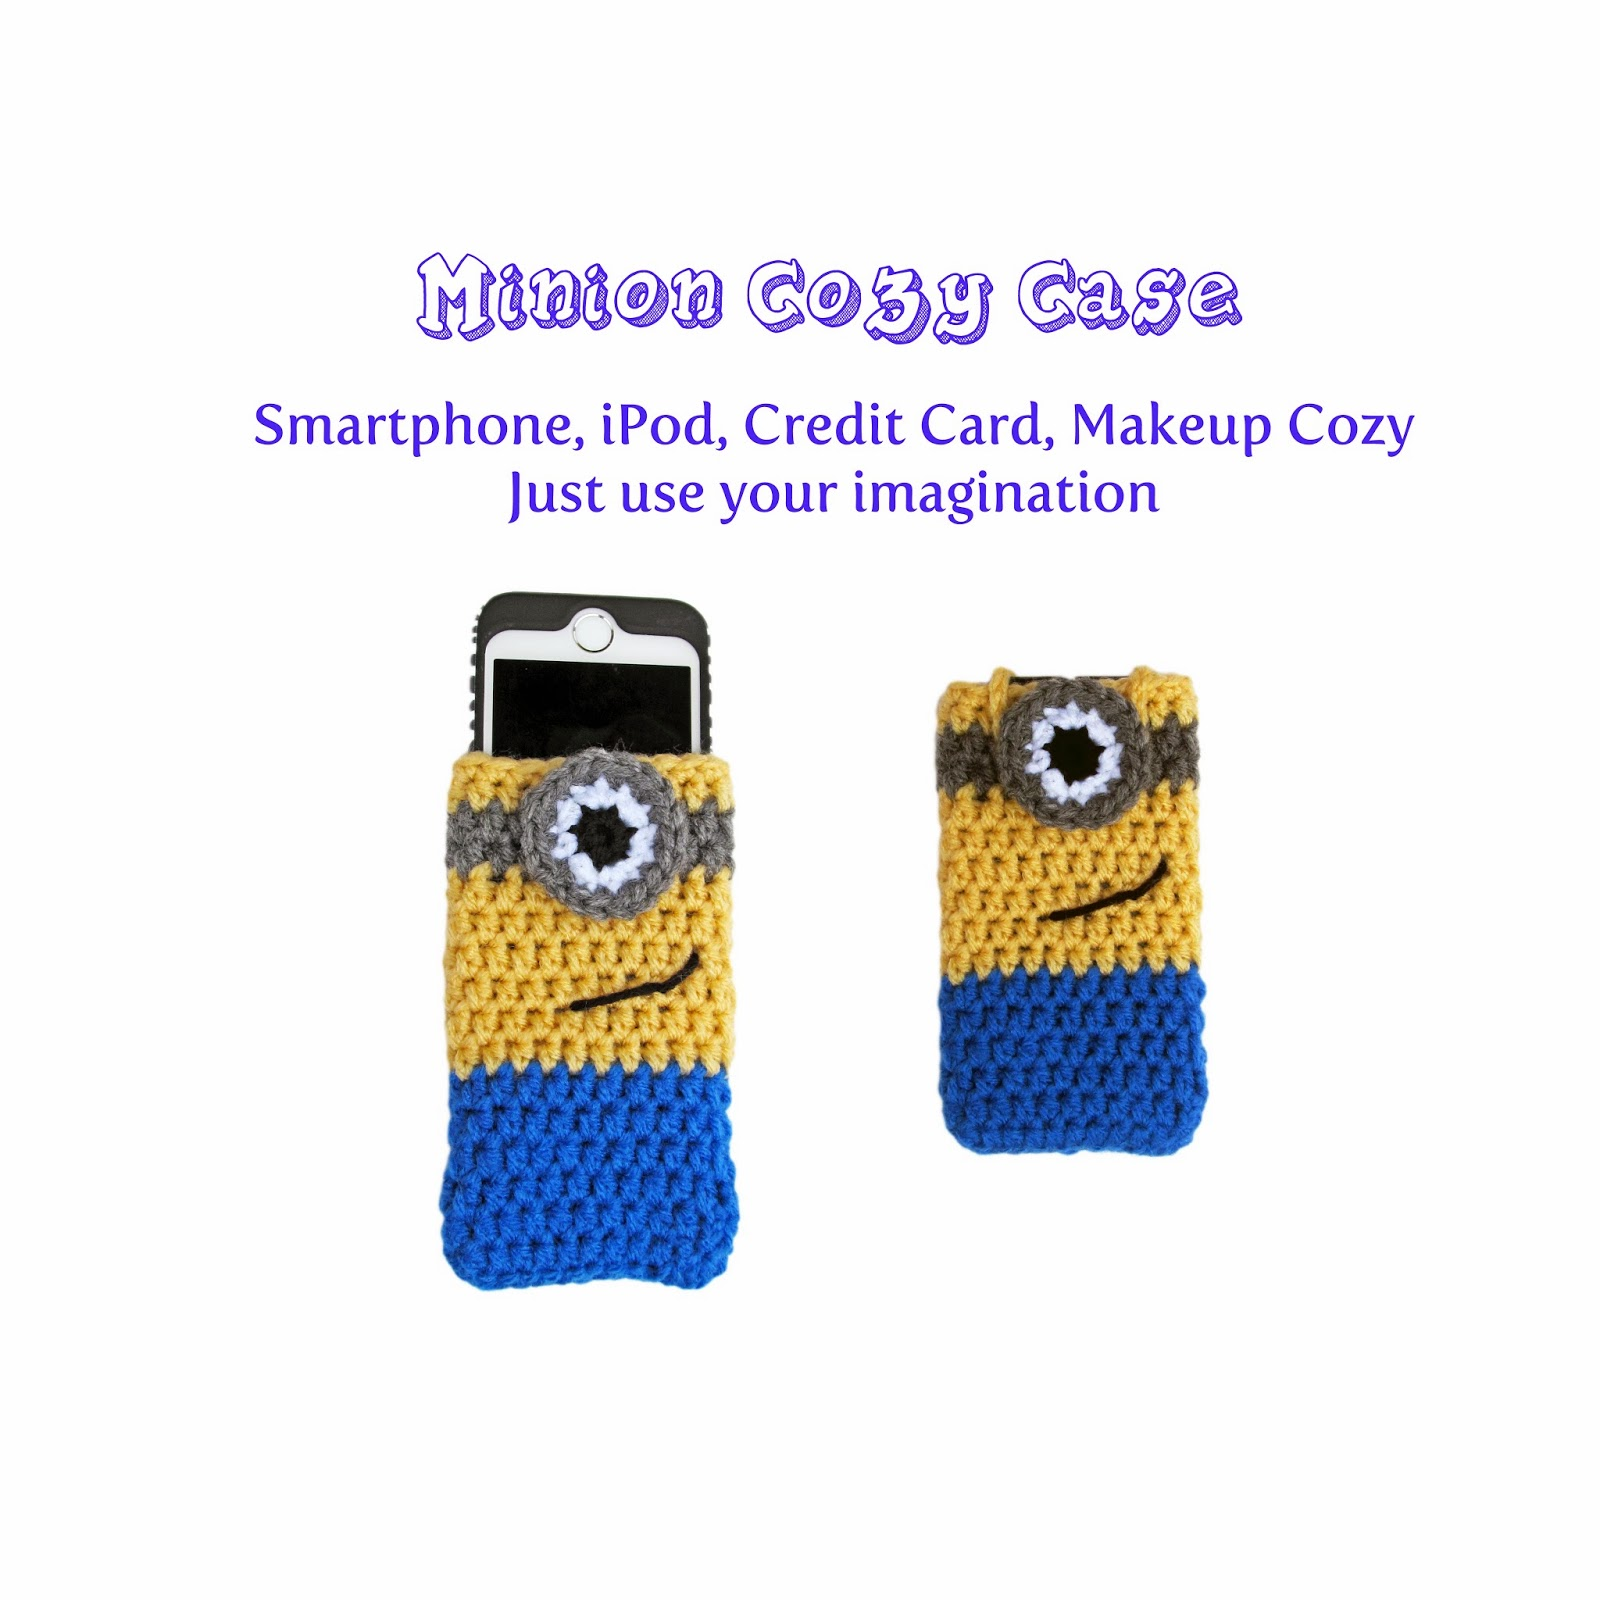 Tampa bay crochet downloadable crochet patterns craftsy download minion cozy case ccuart Choice Image